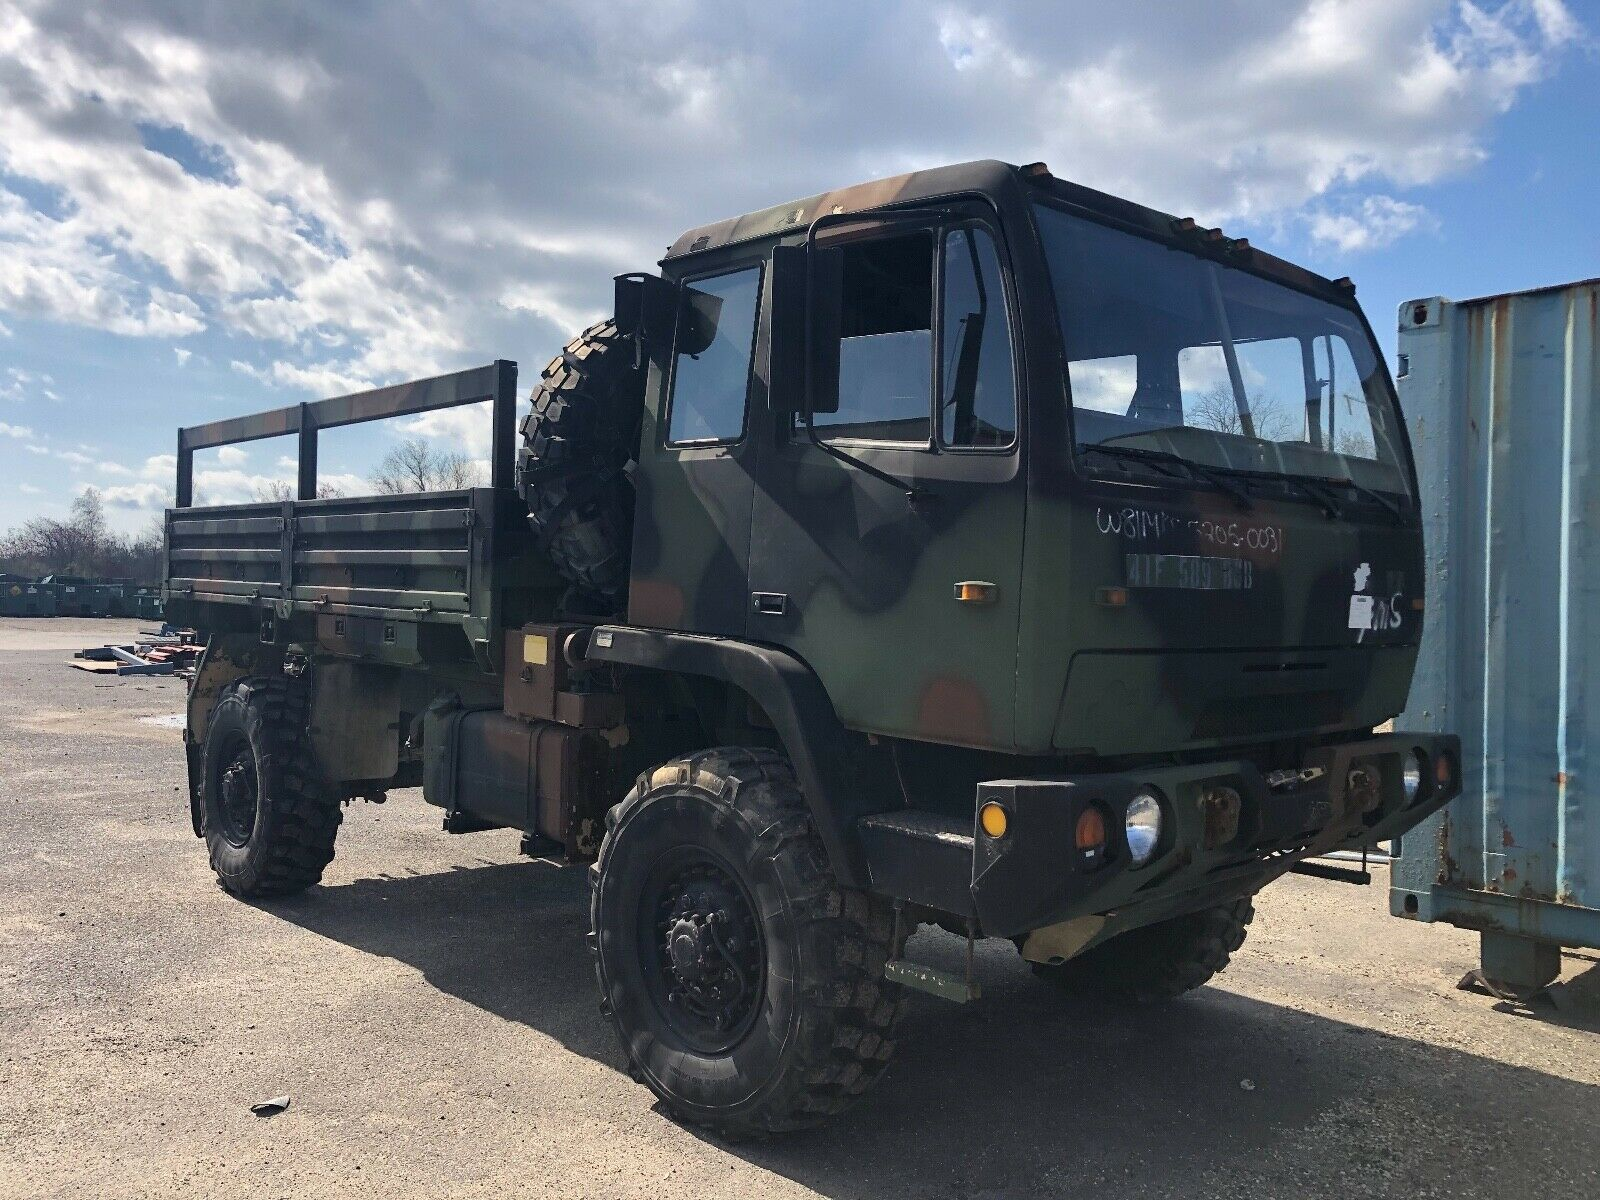 everything works 1998 Stewart & Stevenson M1078 military for sale